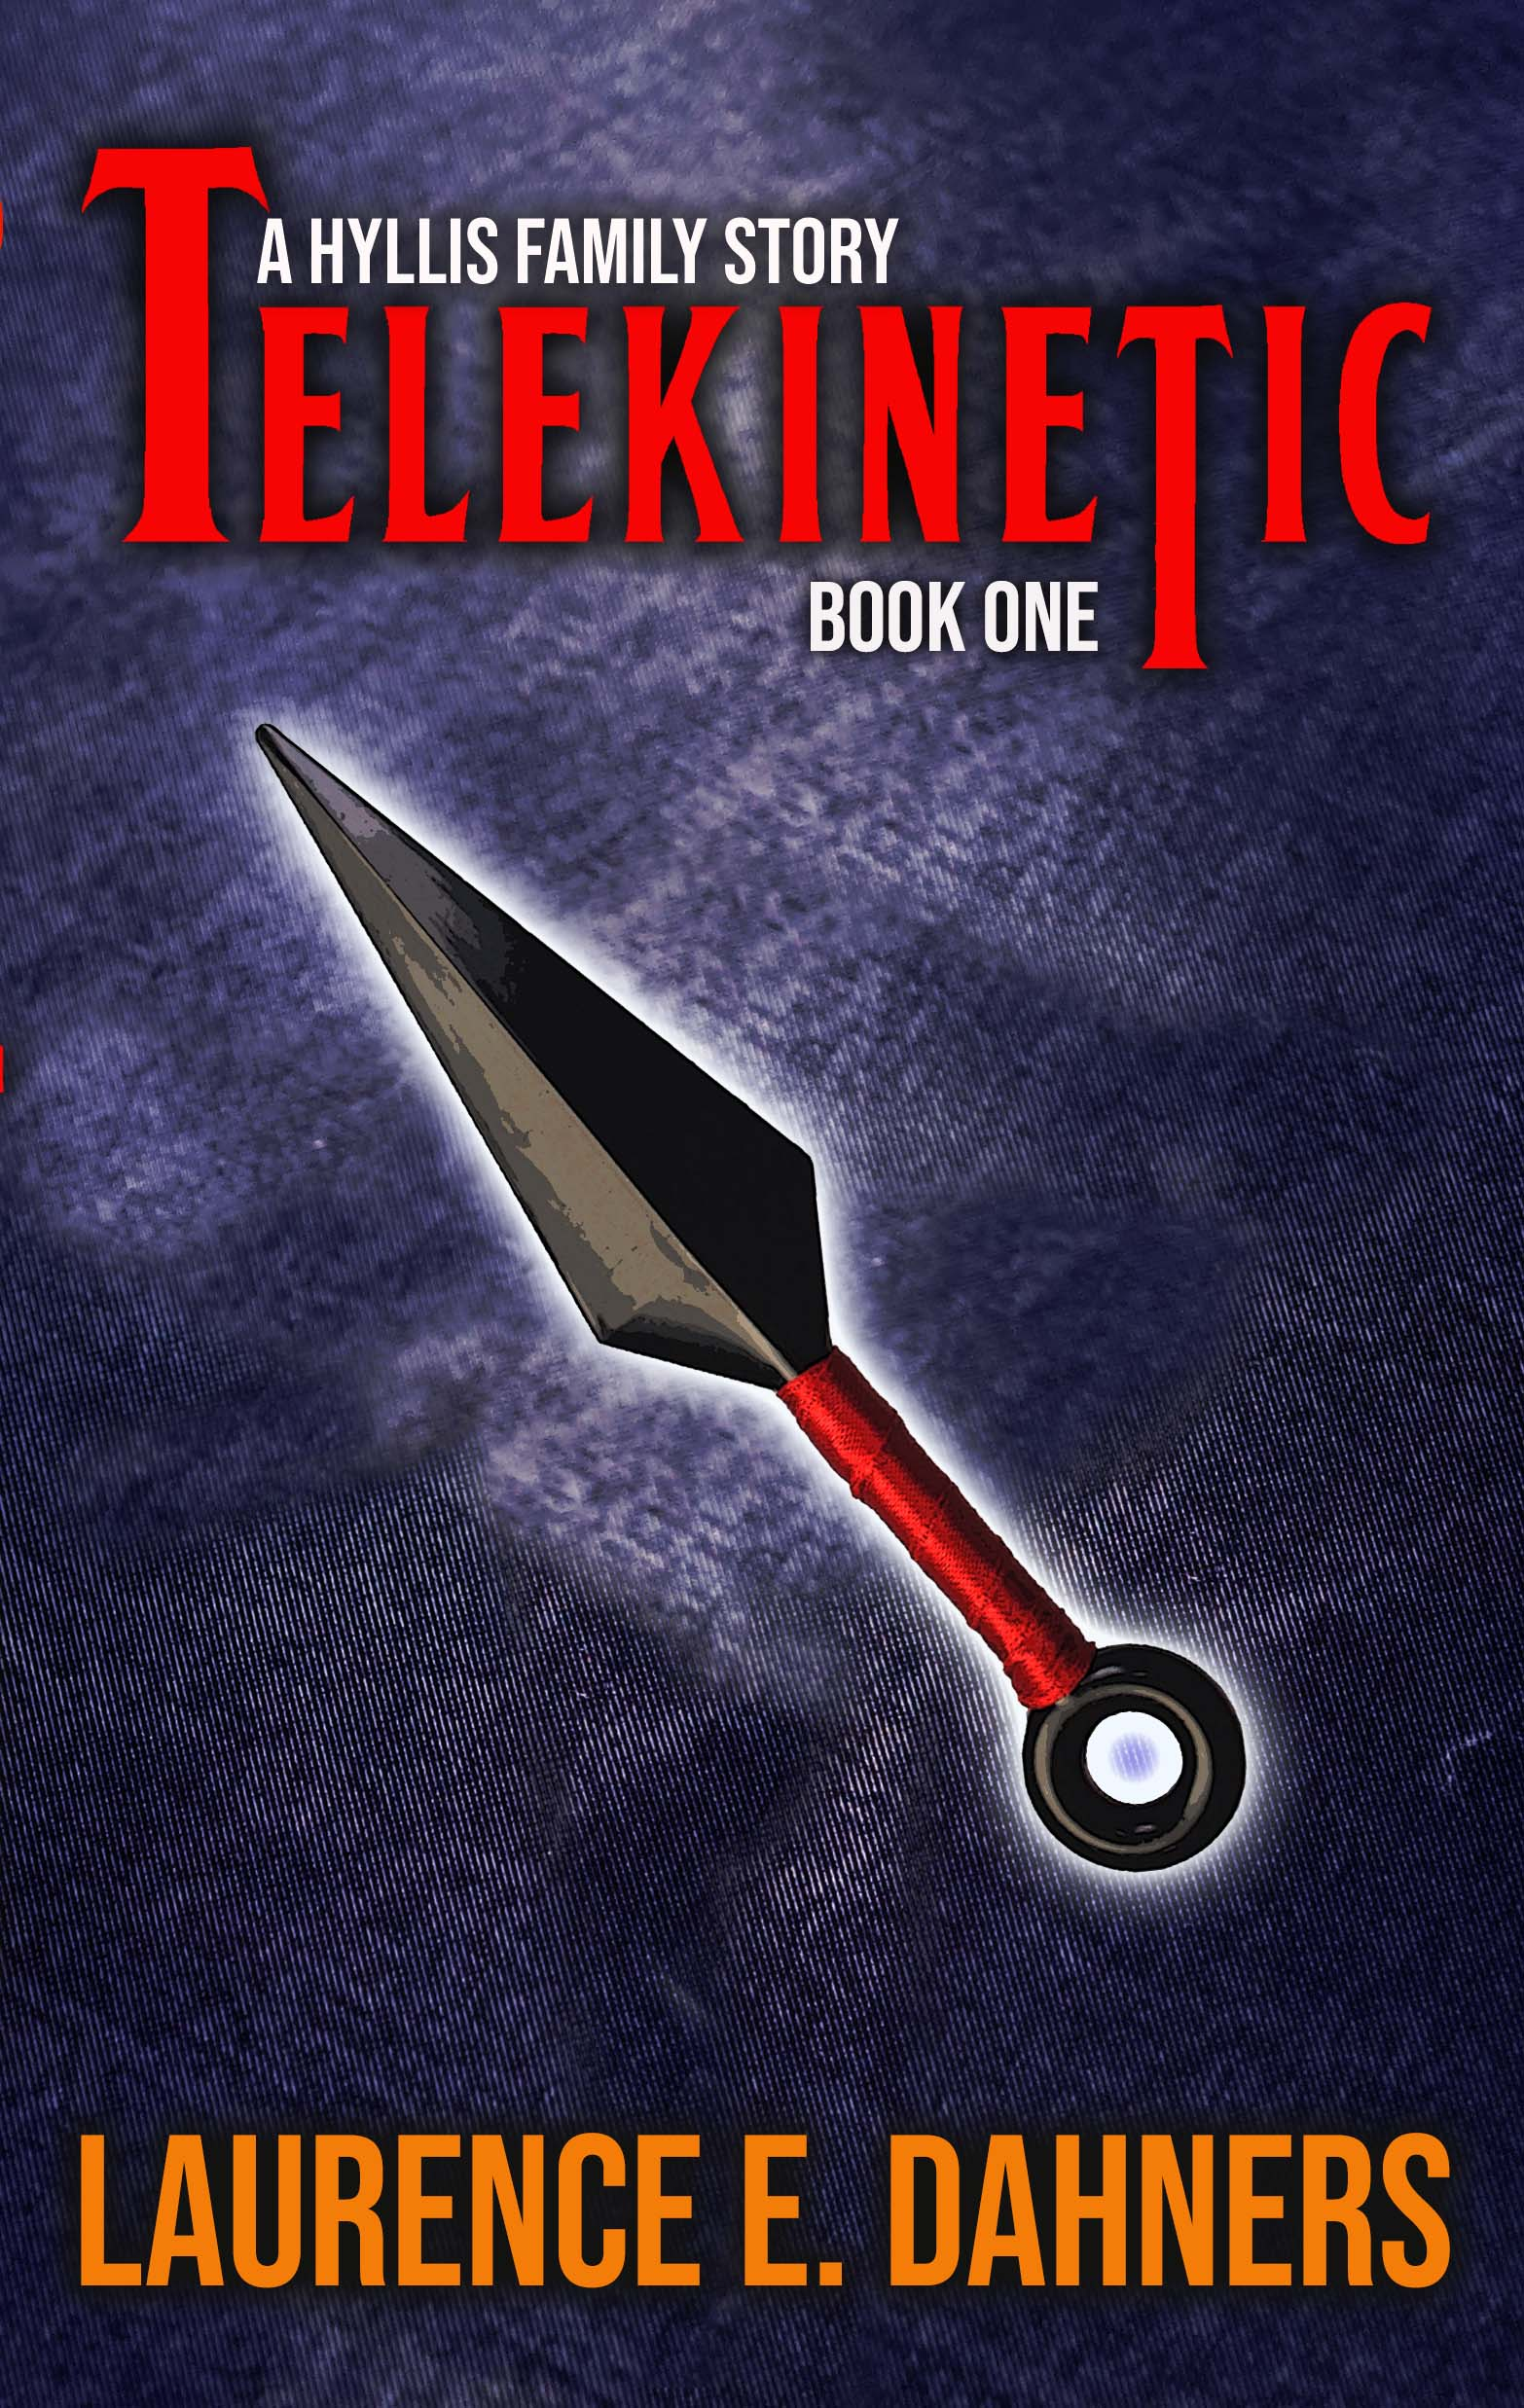 Hyllis Family: Book 1: Telekinetic